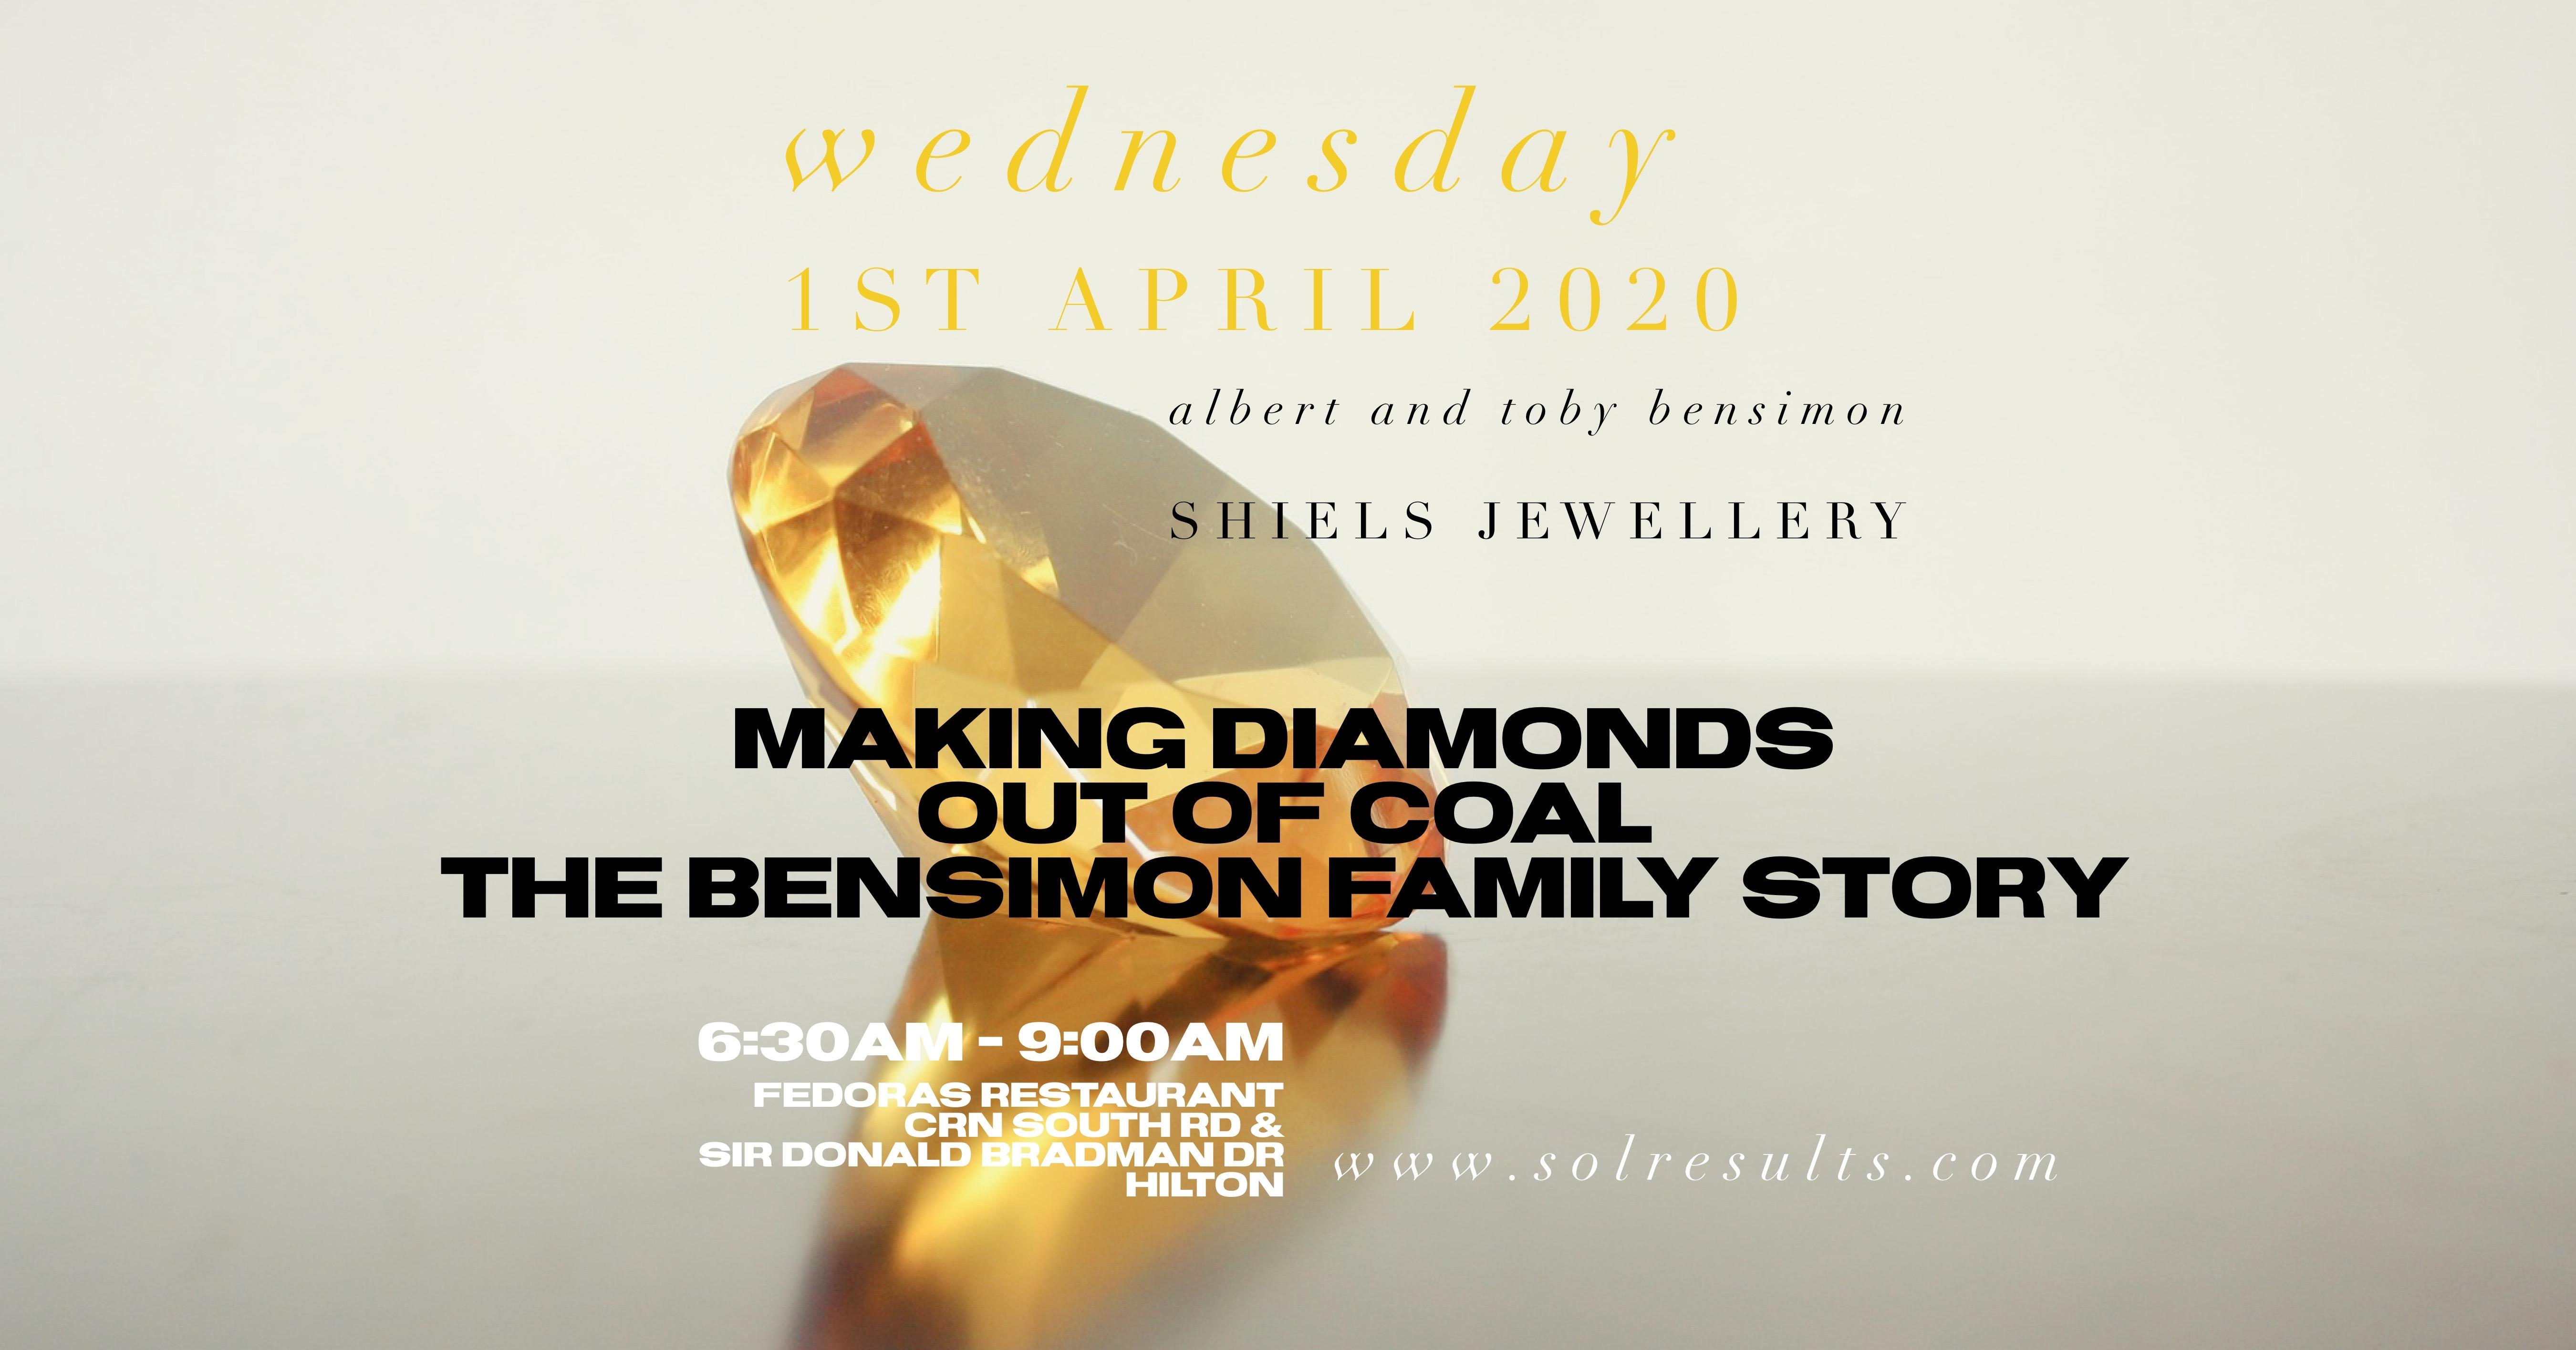 POSTPONED - Breakfast at the Next Level | Making Diamonds Out of Coal – The Bensimon Family Story